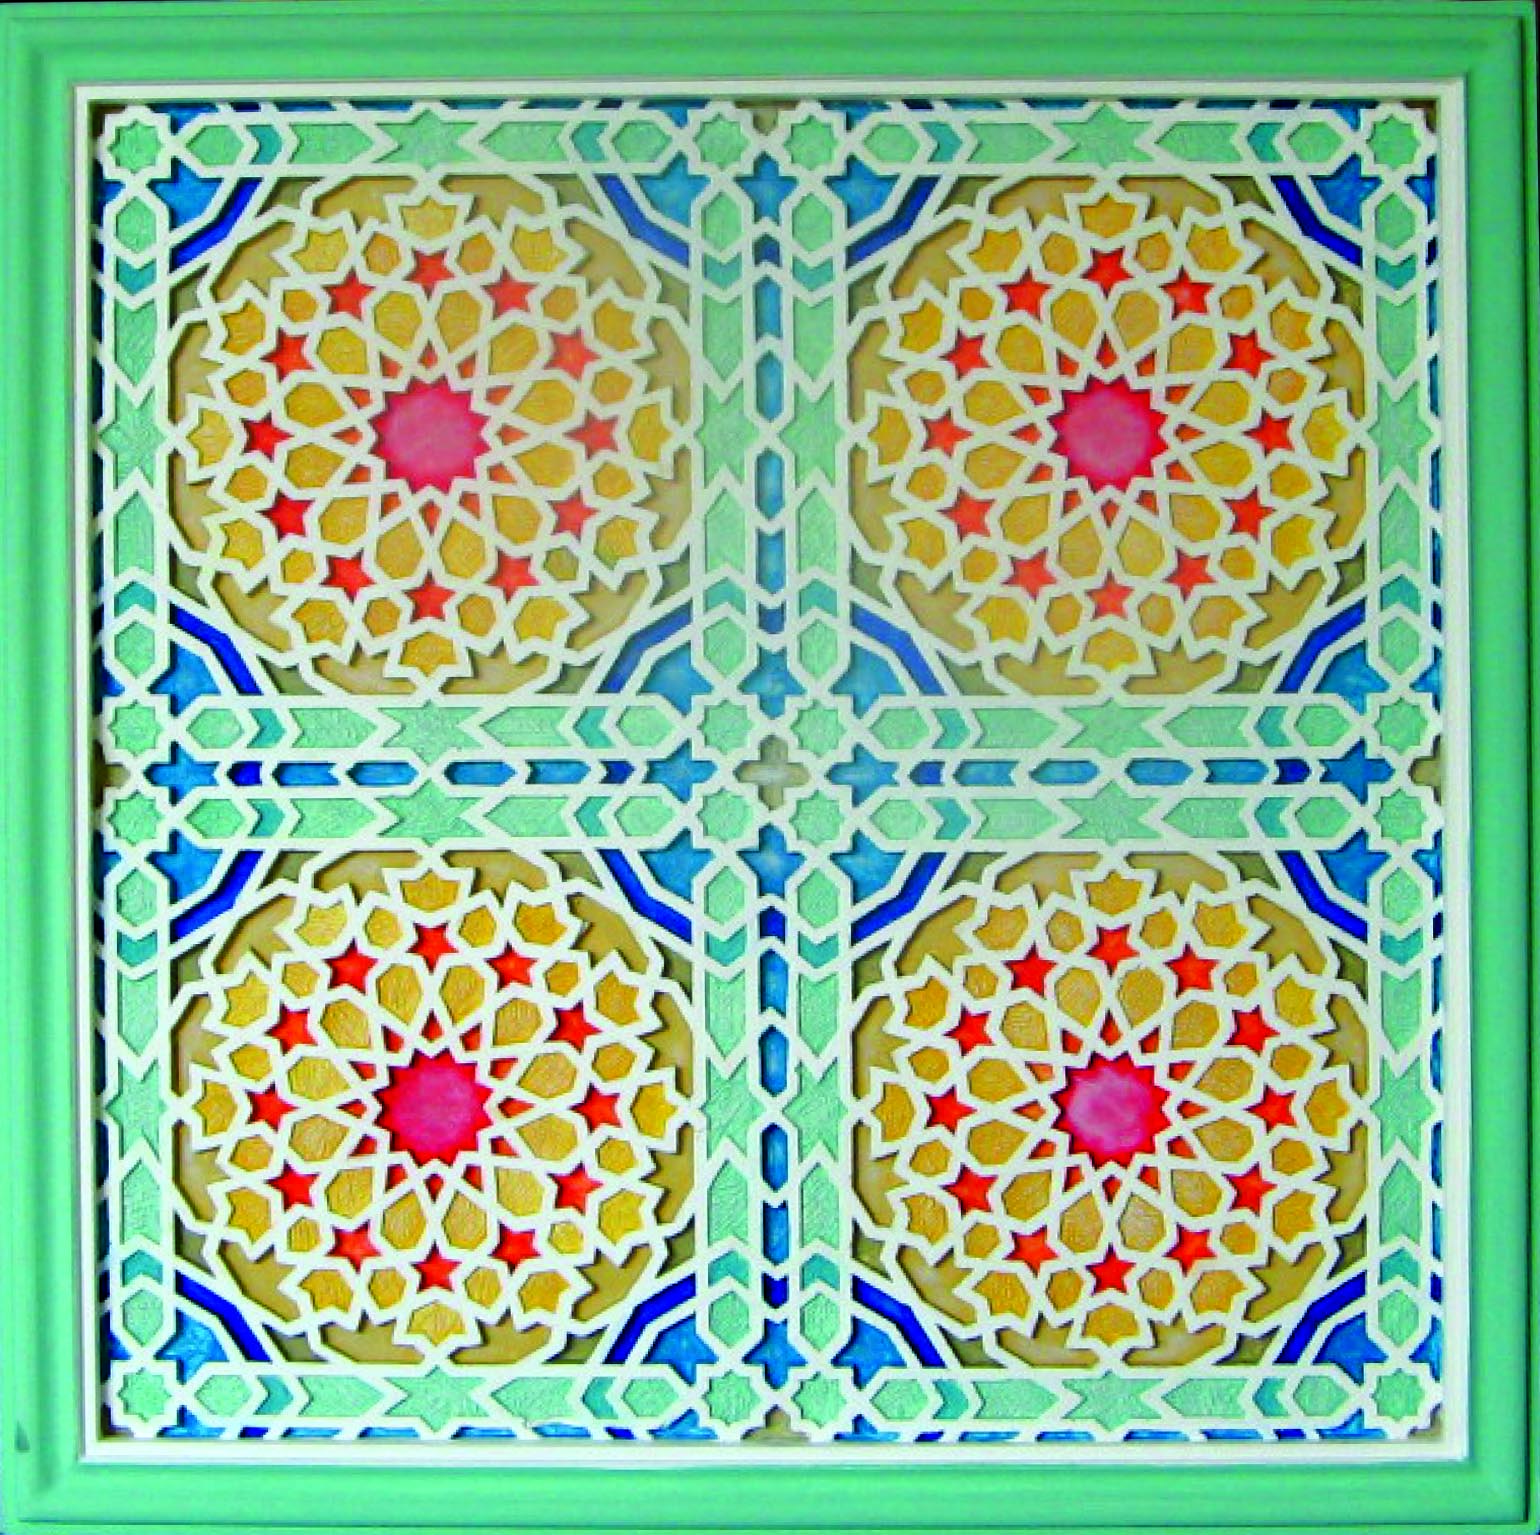 IVHSB WALL DECOR SERIES GEOMETRIC MOTIF